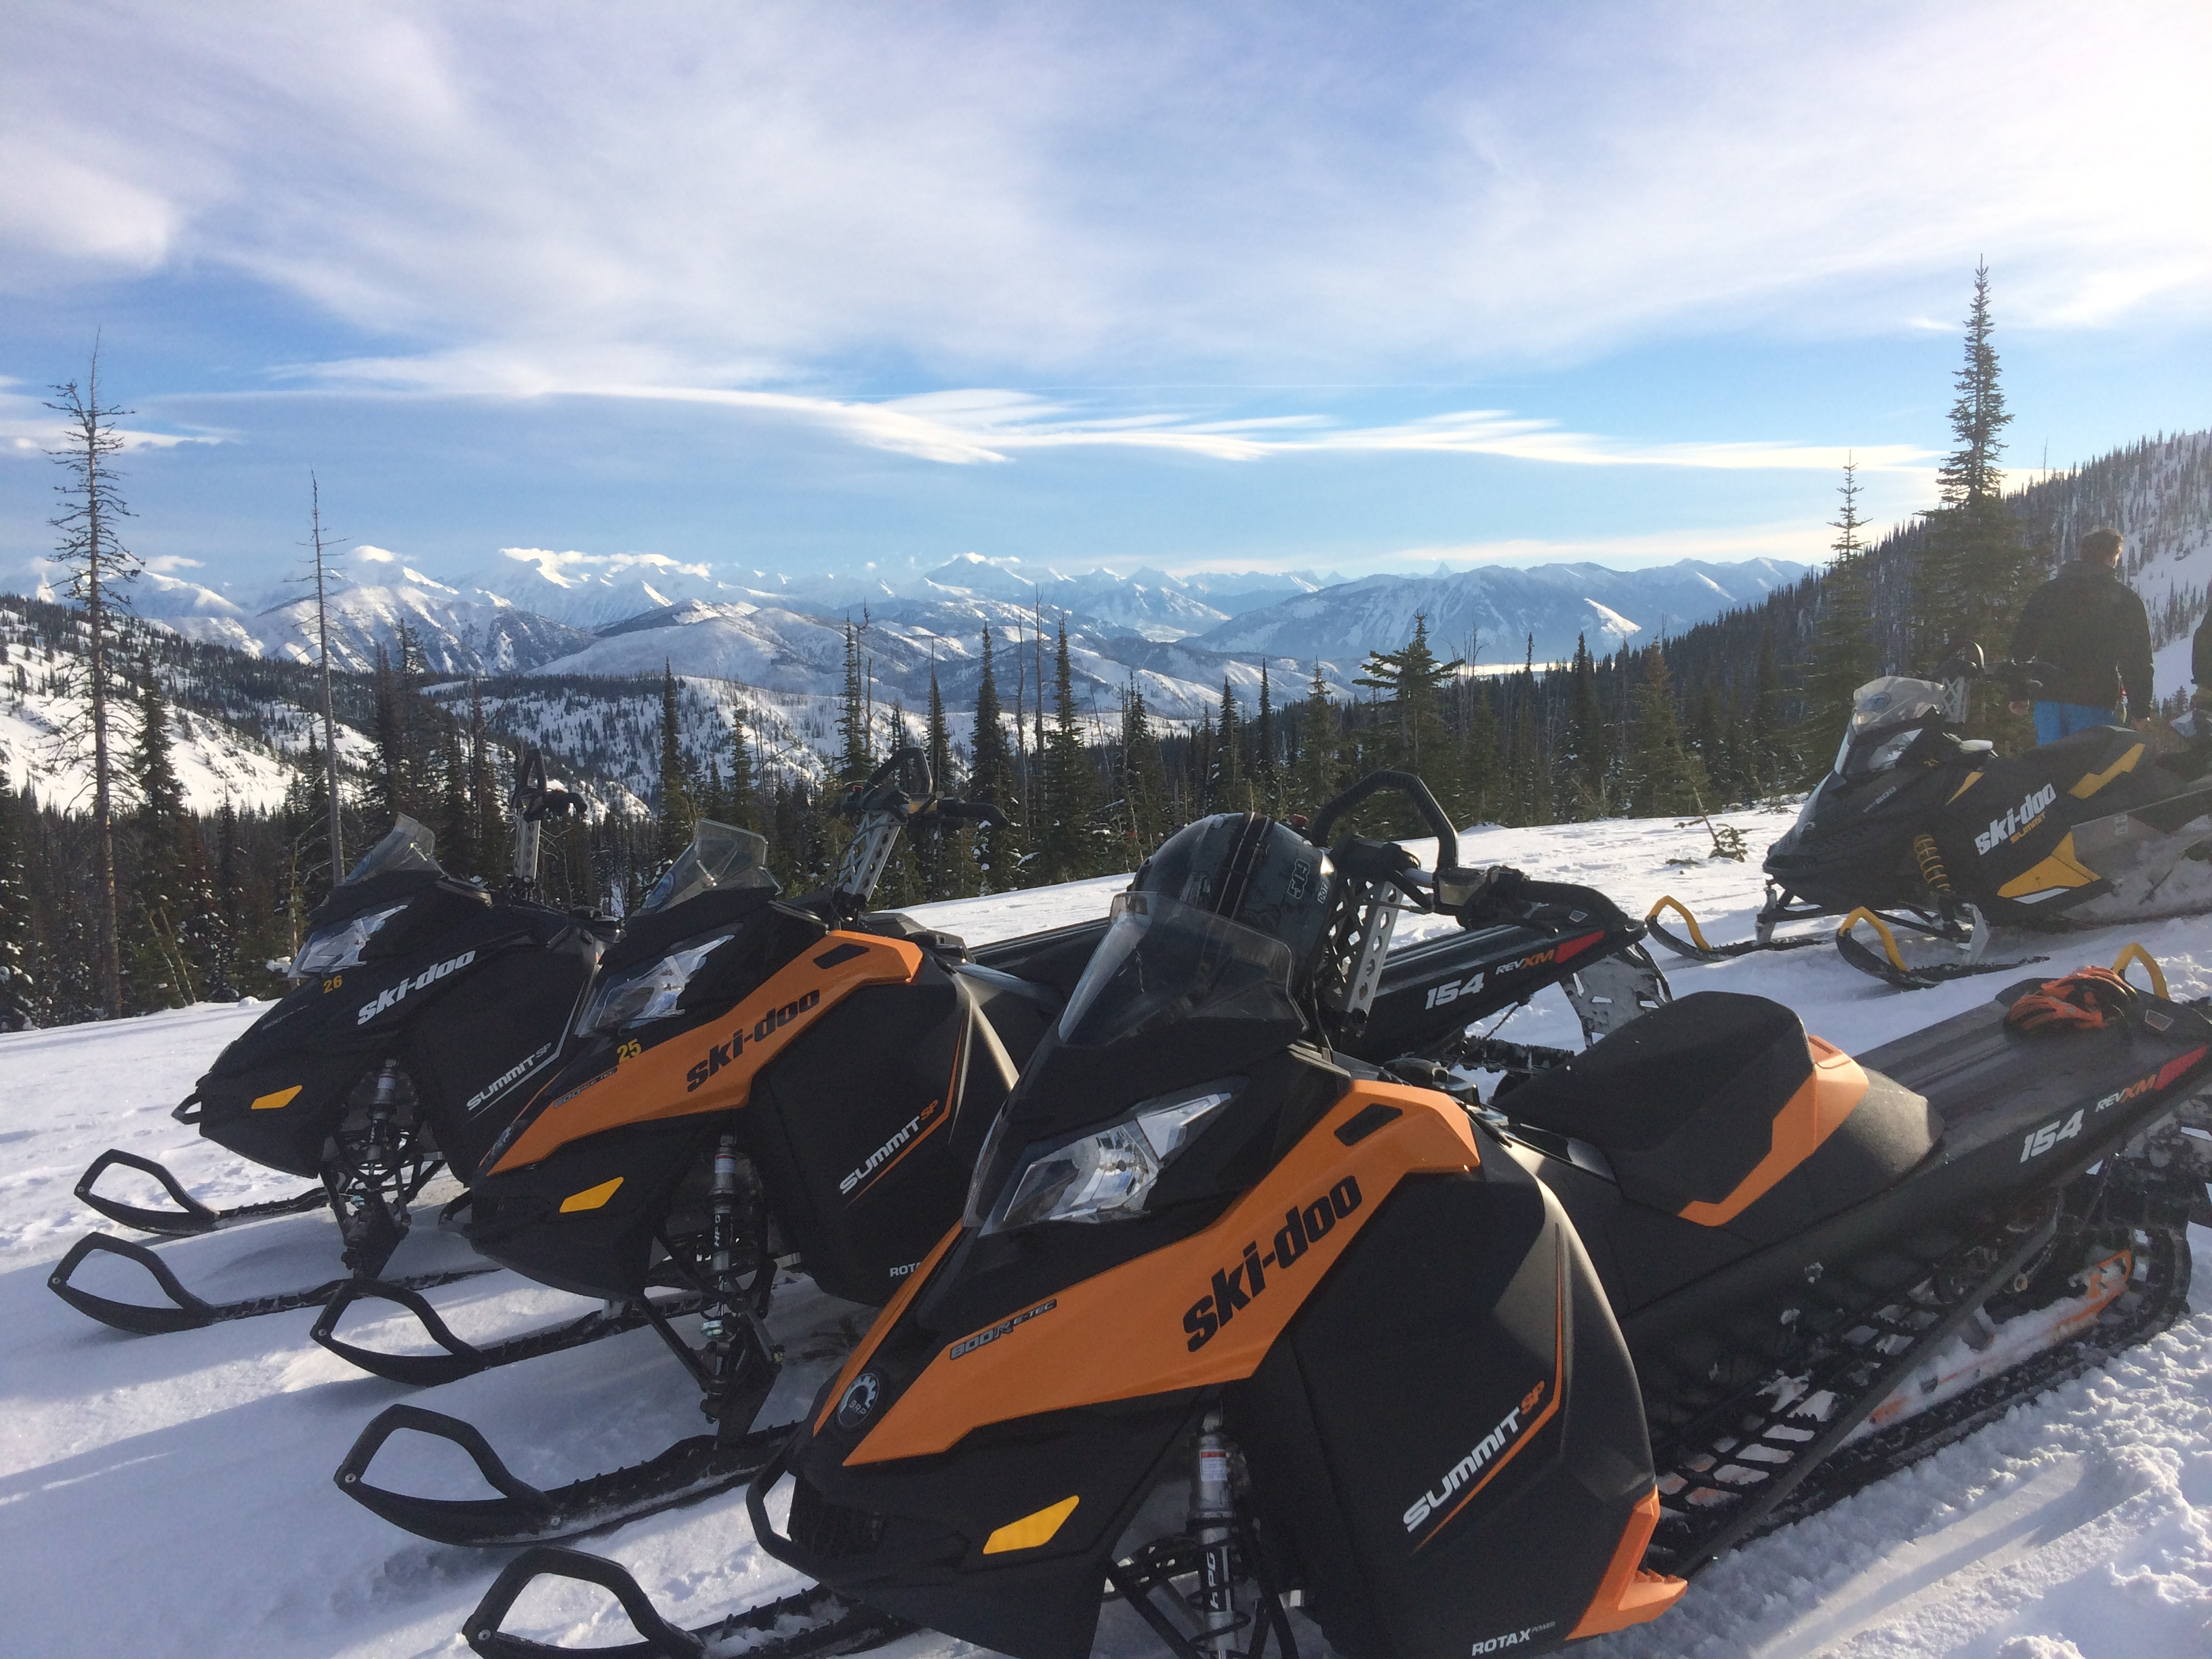 Skidoo Fleet Swan Mountain Snowmobiling